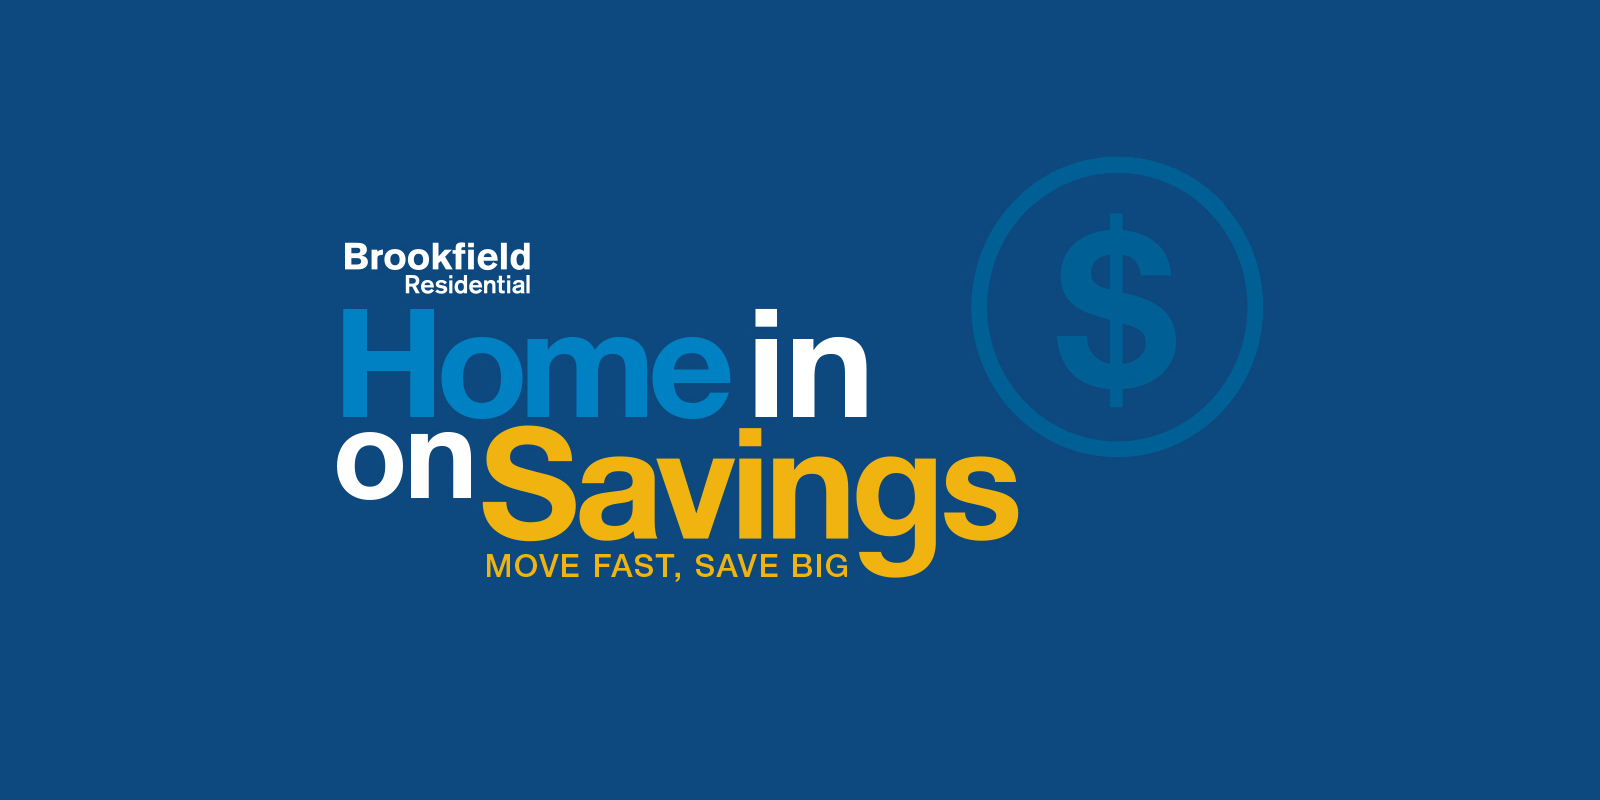 Buy Brookfield Now Special Financing Event | Brookfield Residential